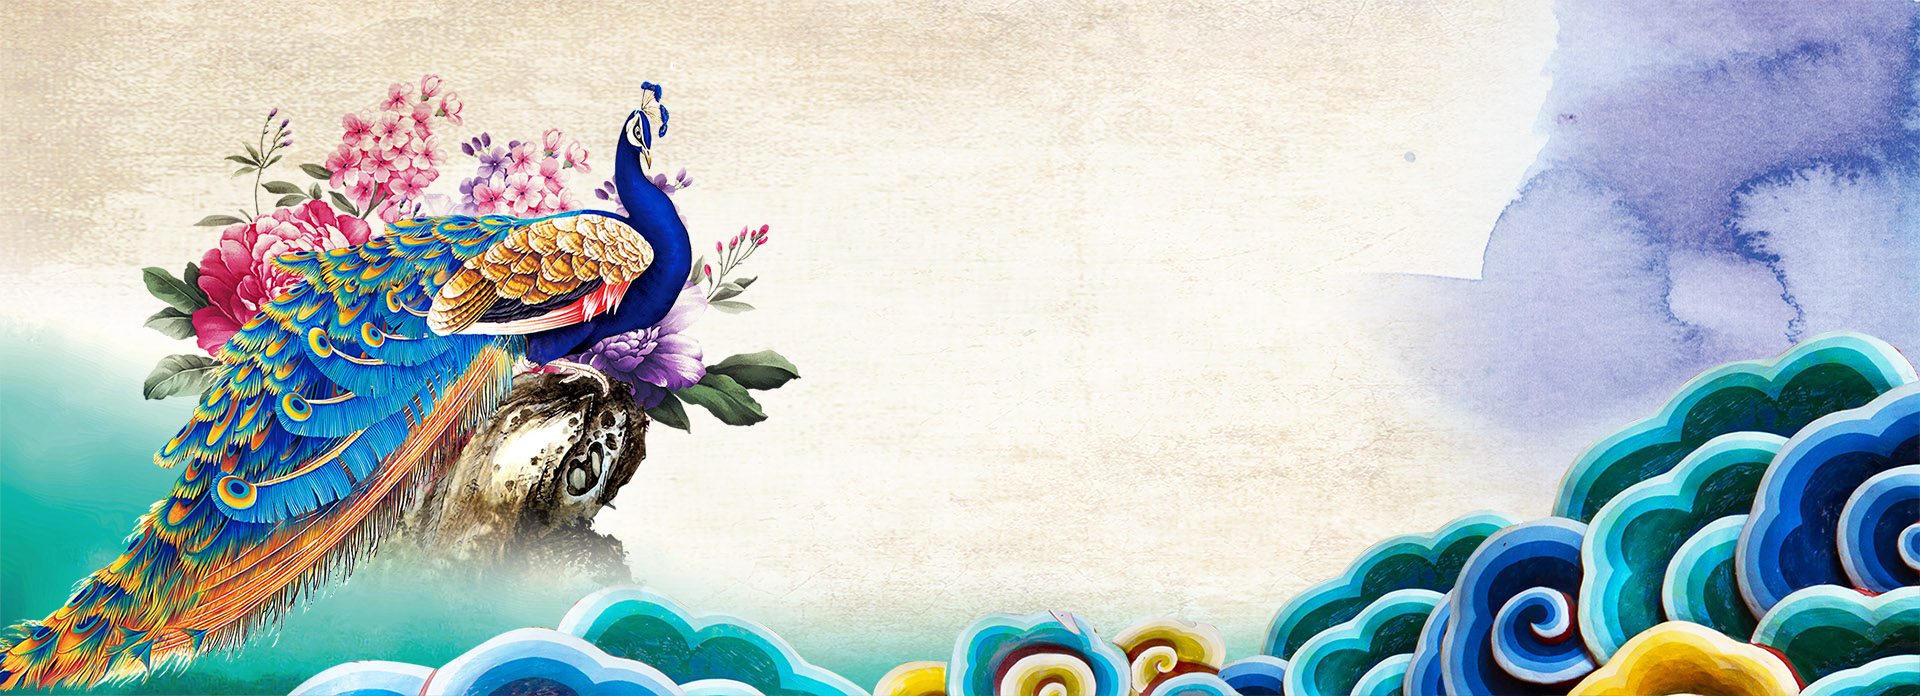 Colorful Food Wallpaper Free Download: Colorful Peacock, Colorful, Peacock, Animal Background